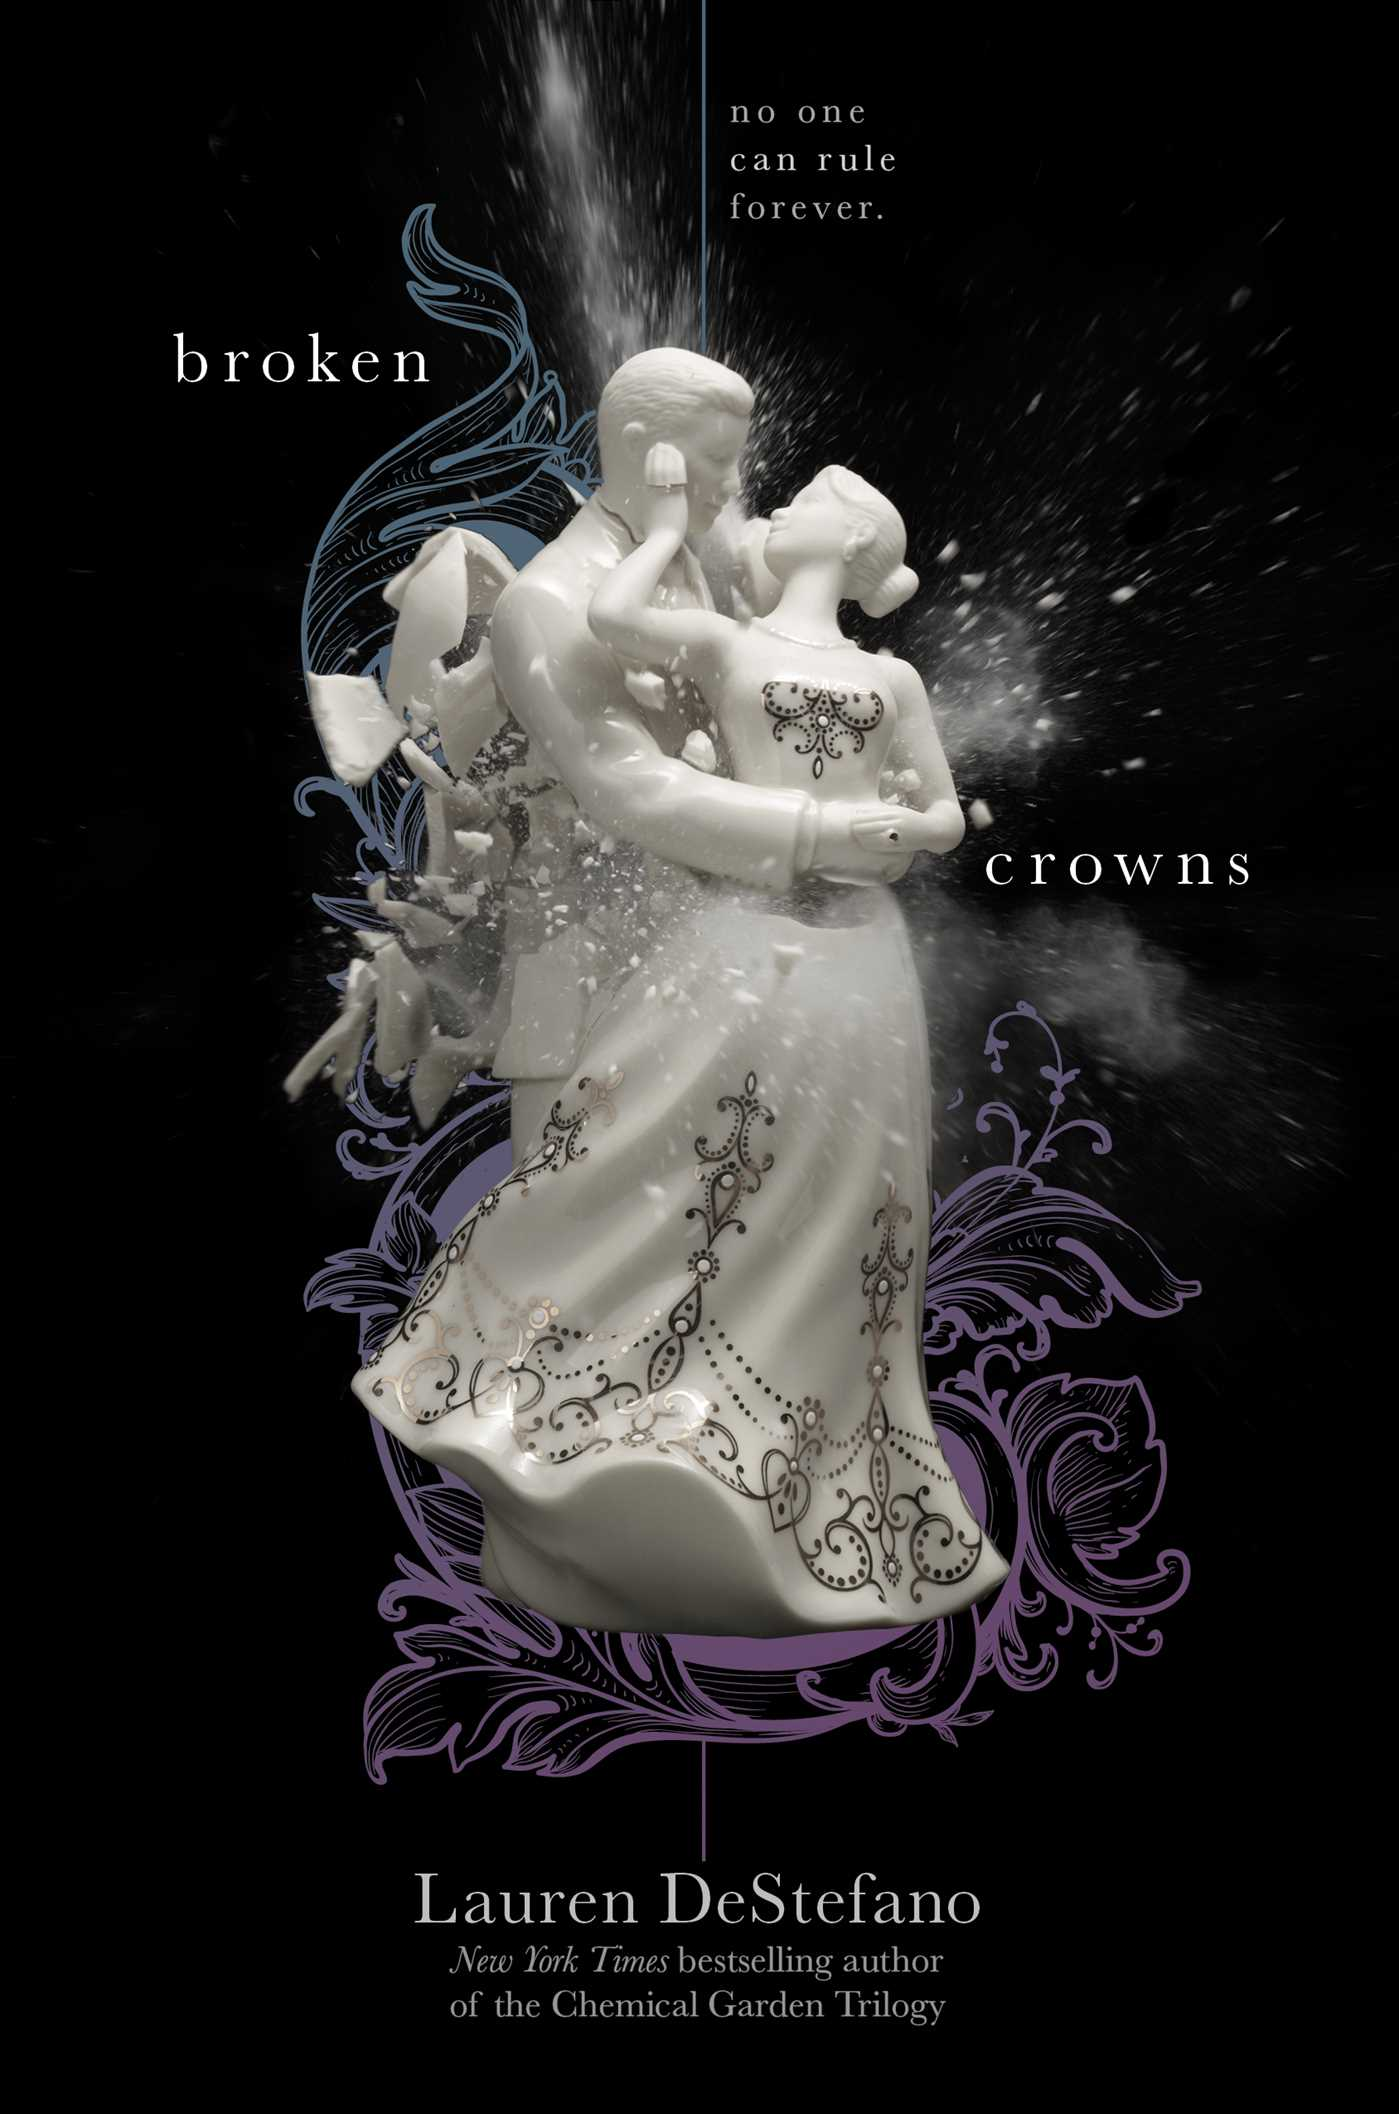 Broken crowns 9781442496446 hr